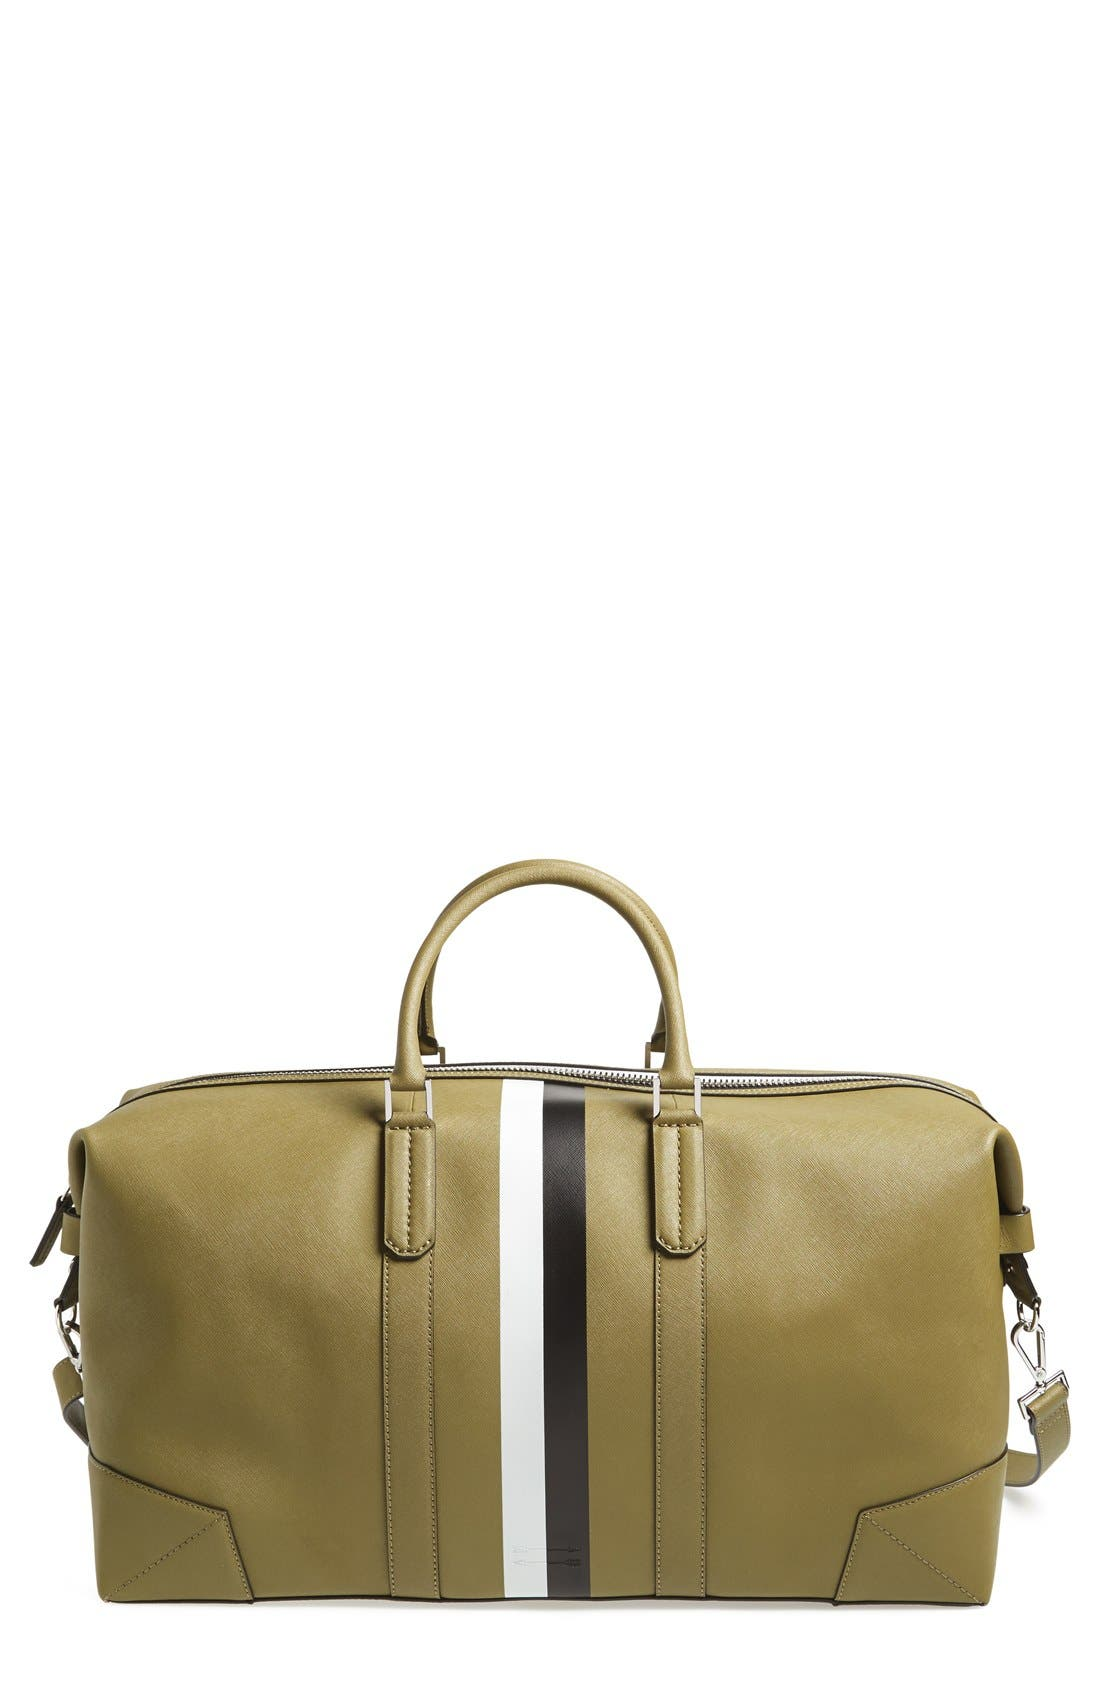 Main Image - Ben Minkoff 'Wythe' Weekend Size Saffiano Leather Duffel Bag